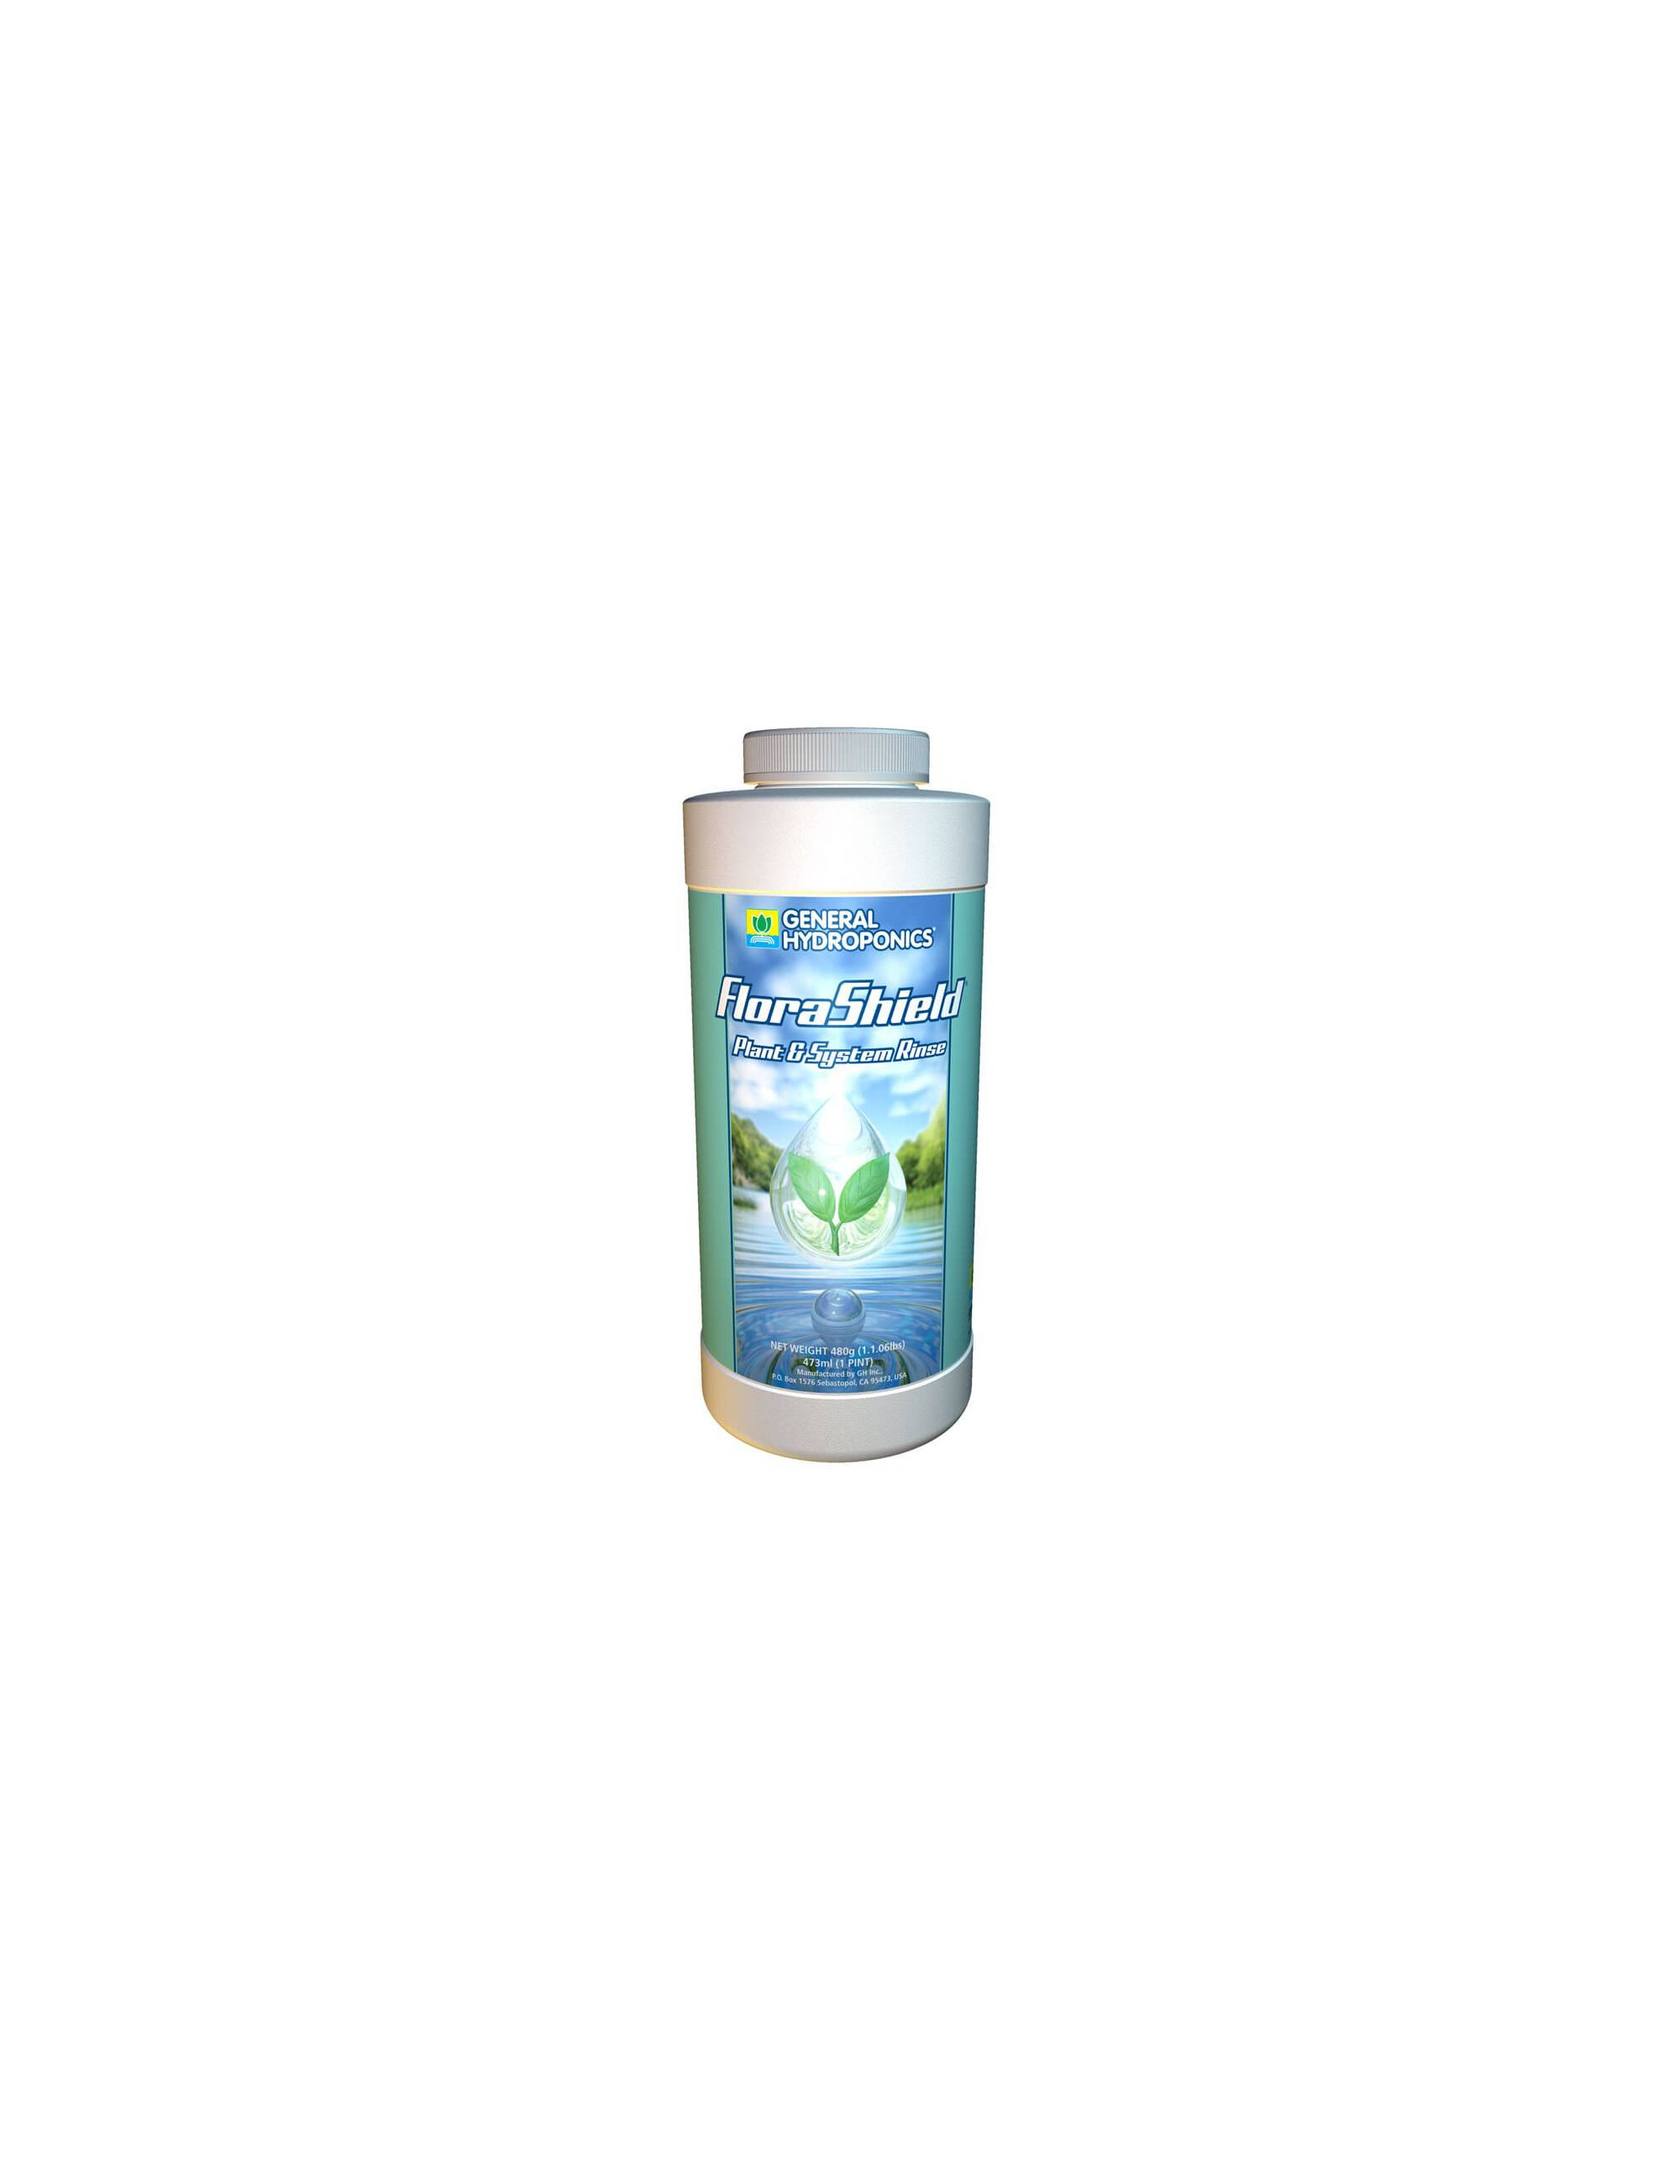 FLORA SHIELD 16 OUNCE